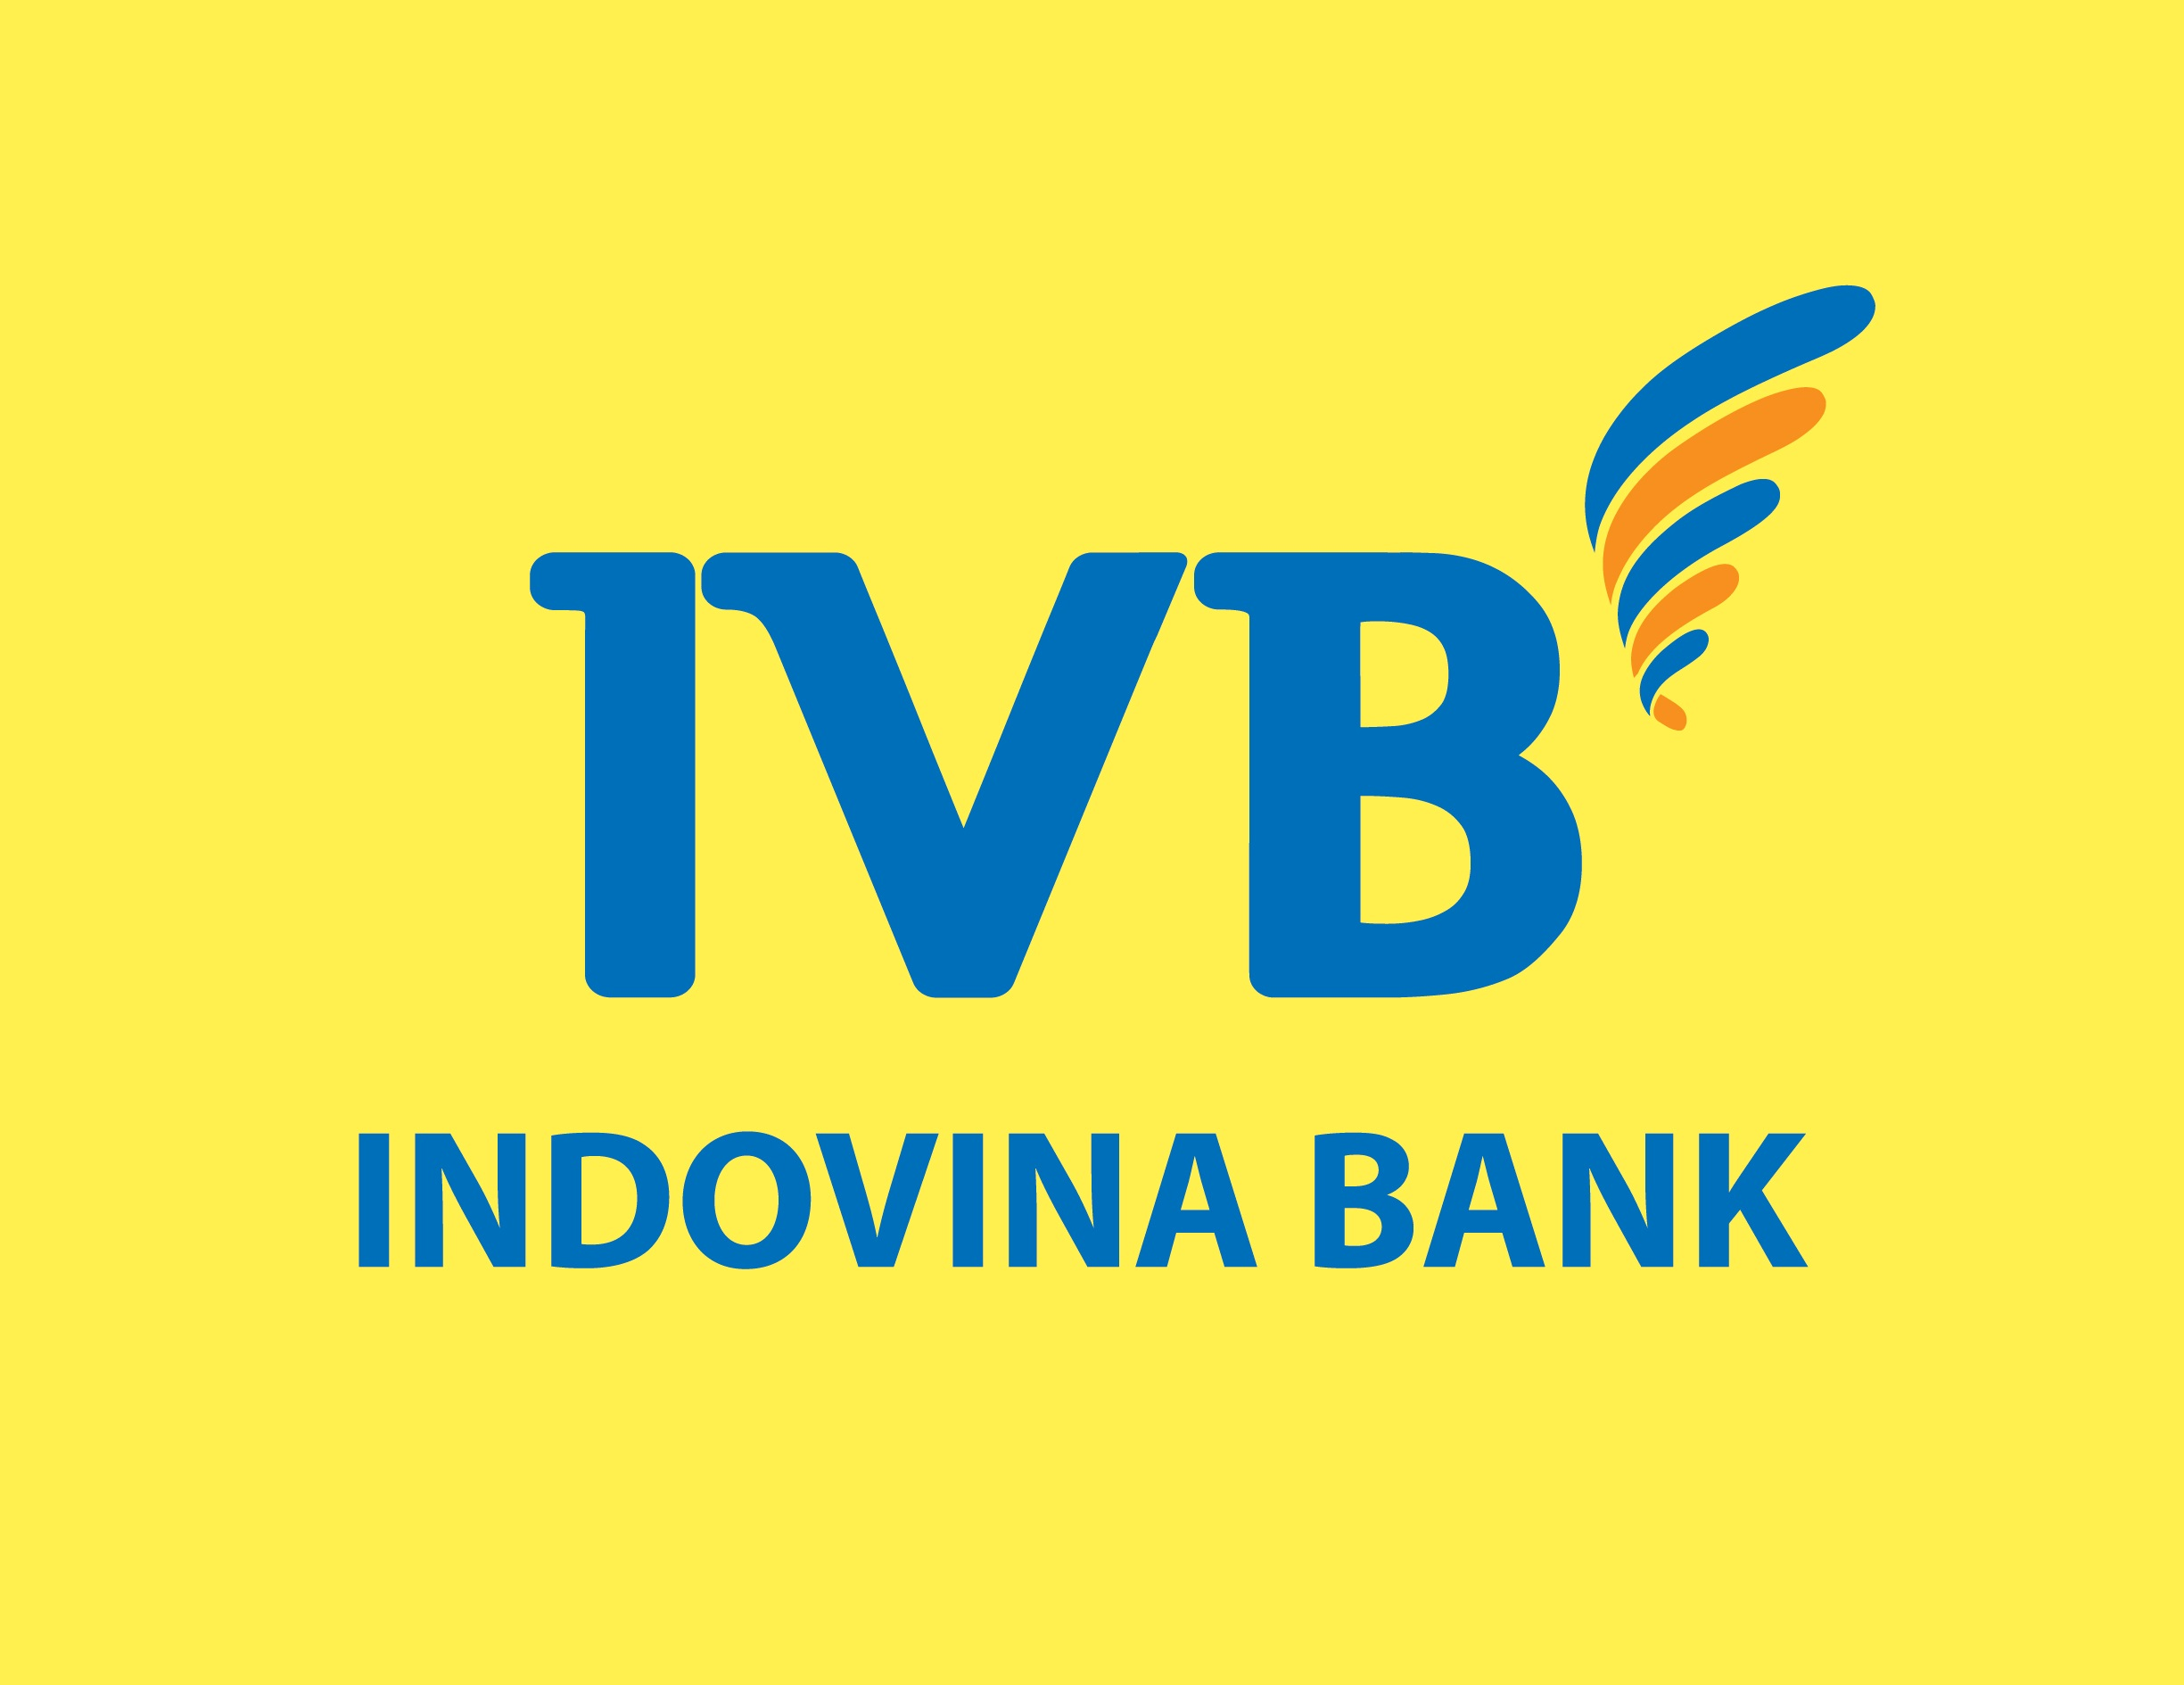 Indovina Bank Ltd.